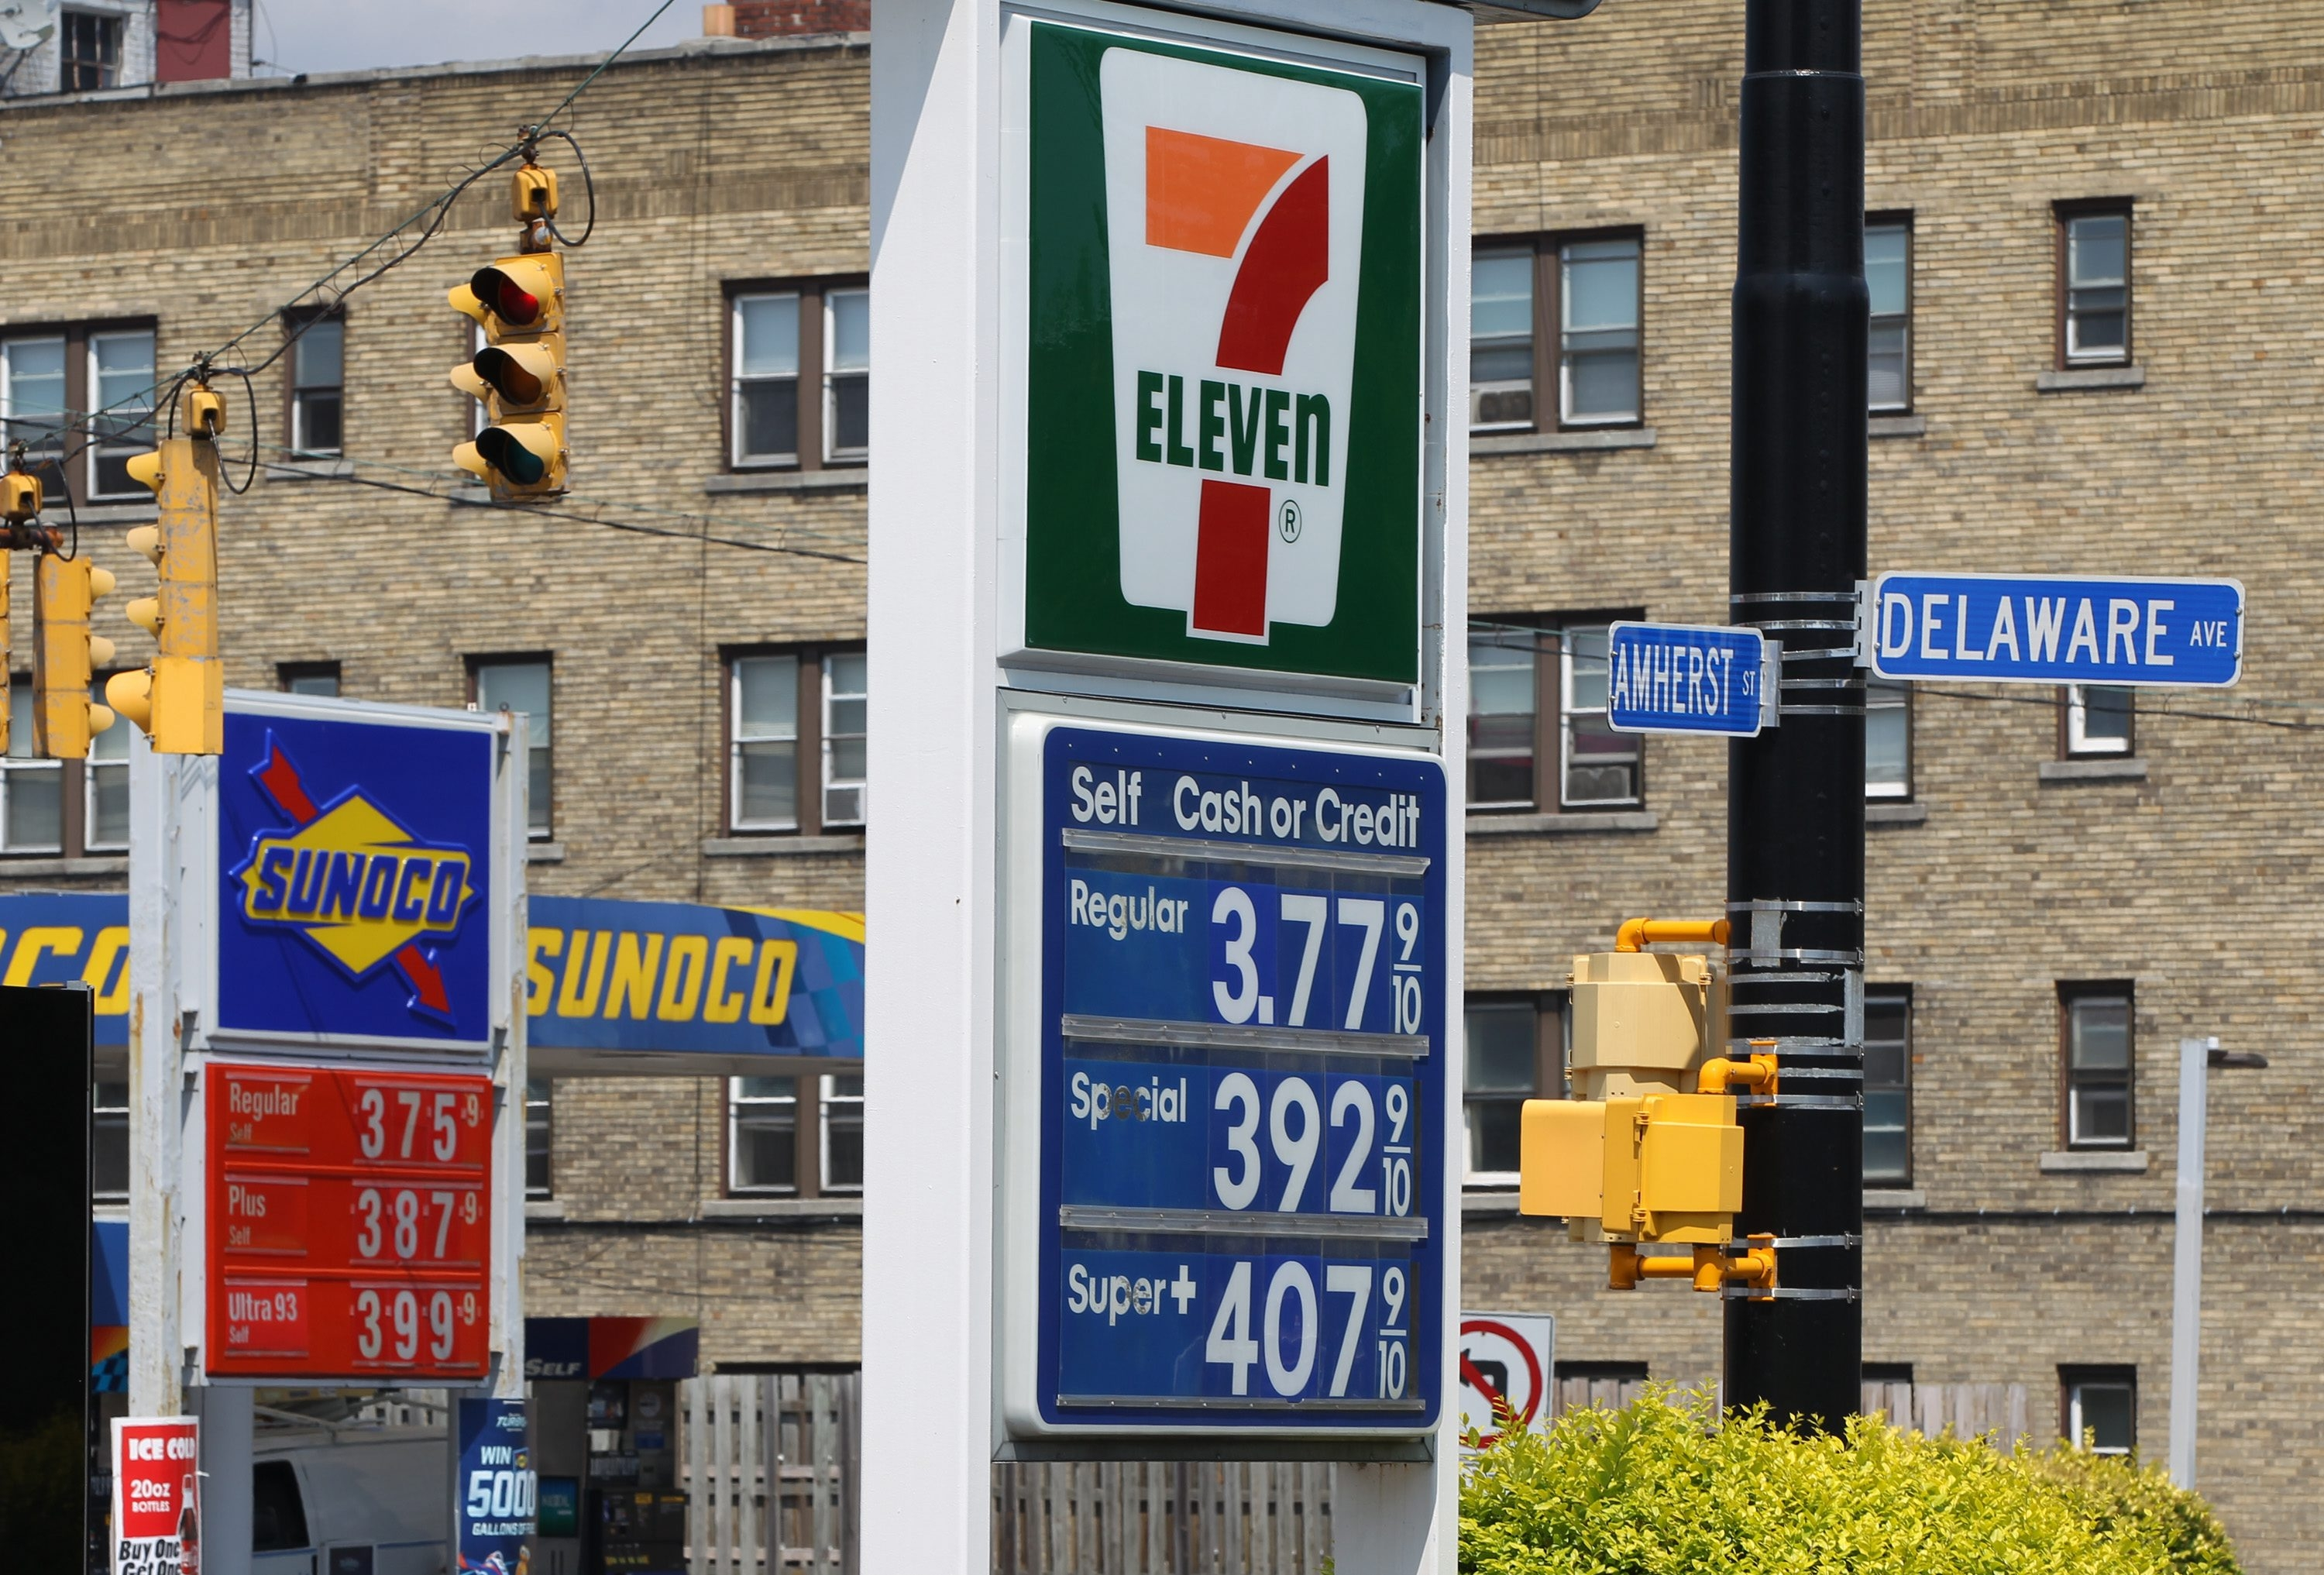 Gas prices in the region have risen 9 cents in the past 8 days, and one analyst thinks an additional 20-cent increase is possible by mid-August, pushing the local price near the $4-a-gallon mark.